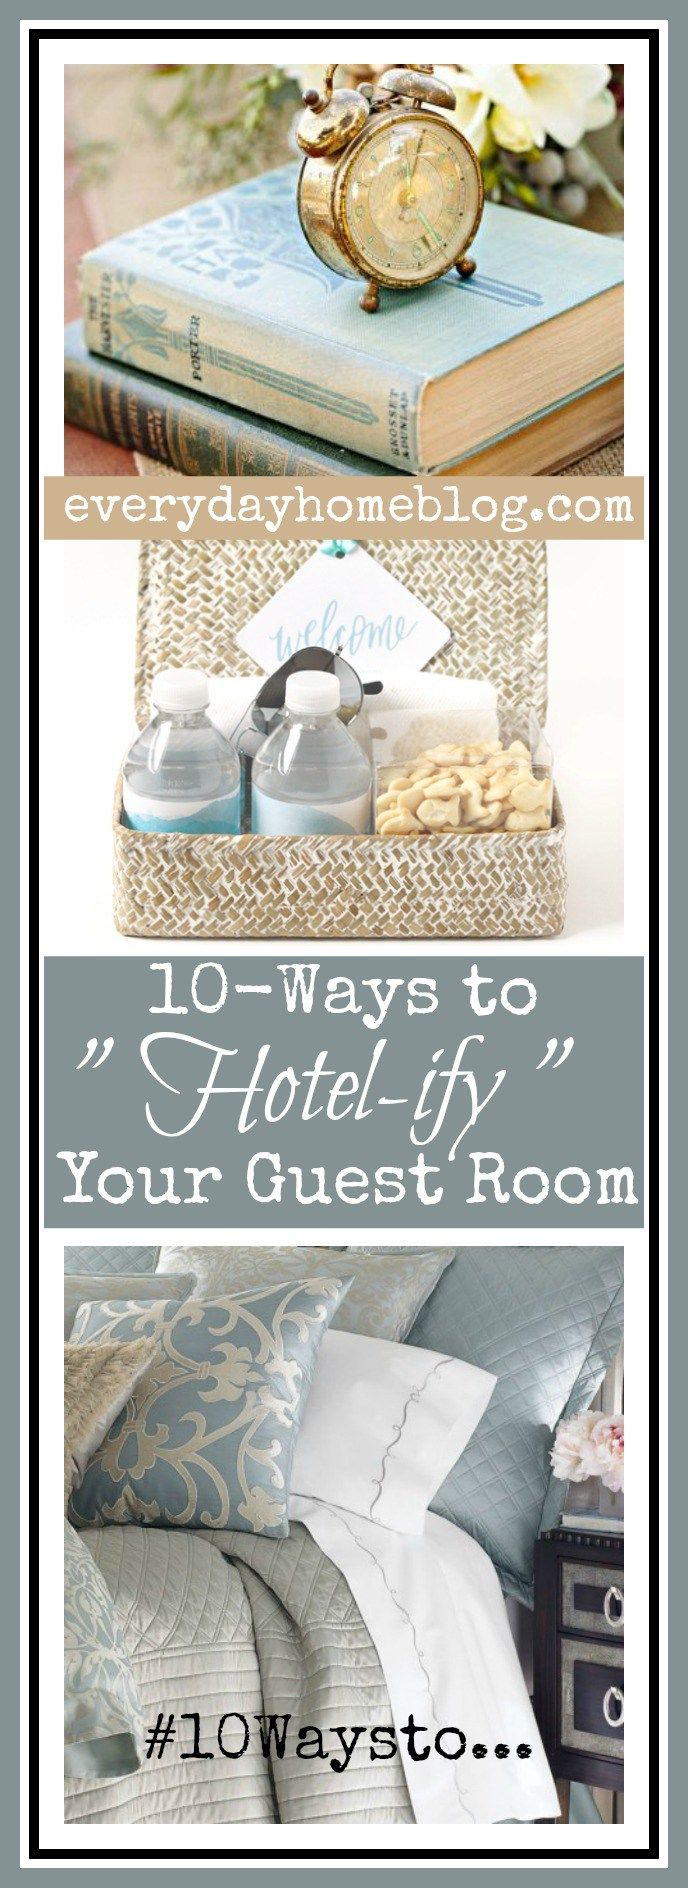 """Hotel Guest Room: 10 Ways To """"Hotel-ify"""" Your Guest Room"""